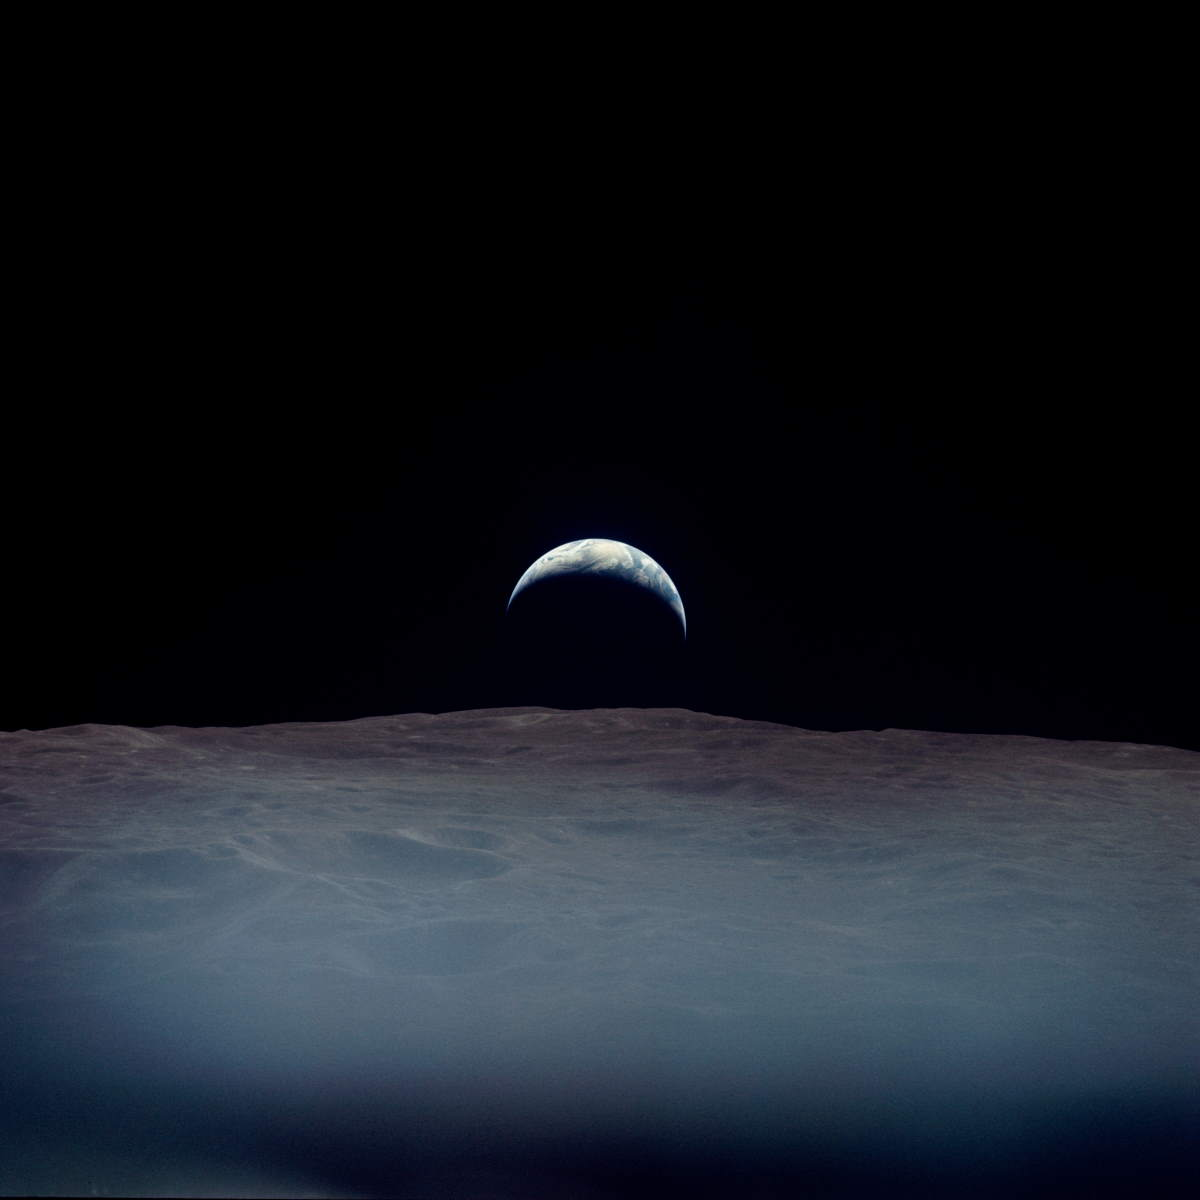 Earth rises just west of Crater Pasteur - Apollo 12 image